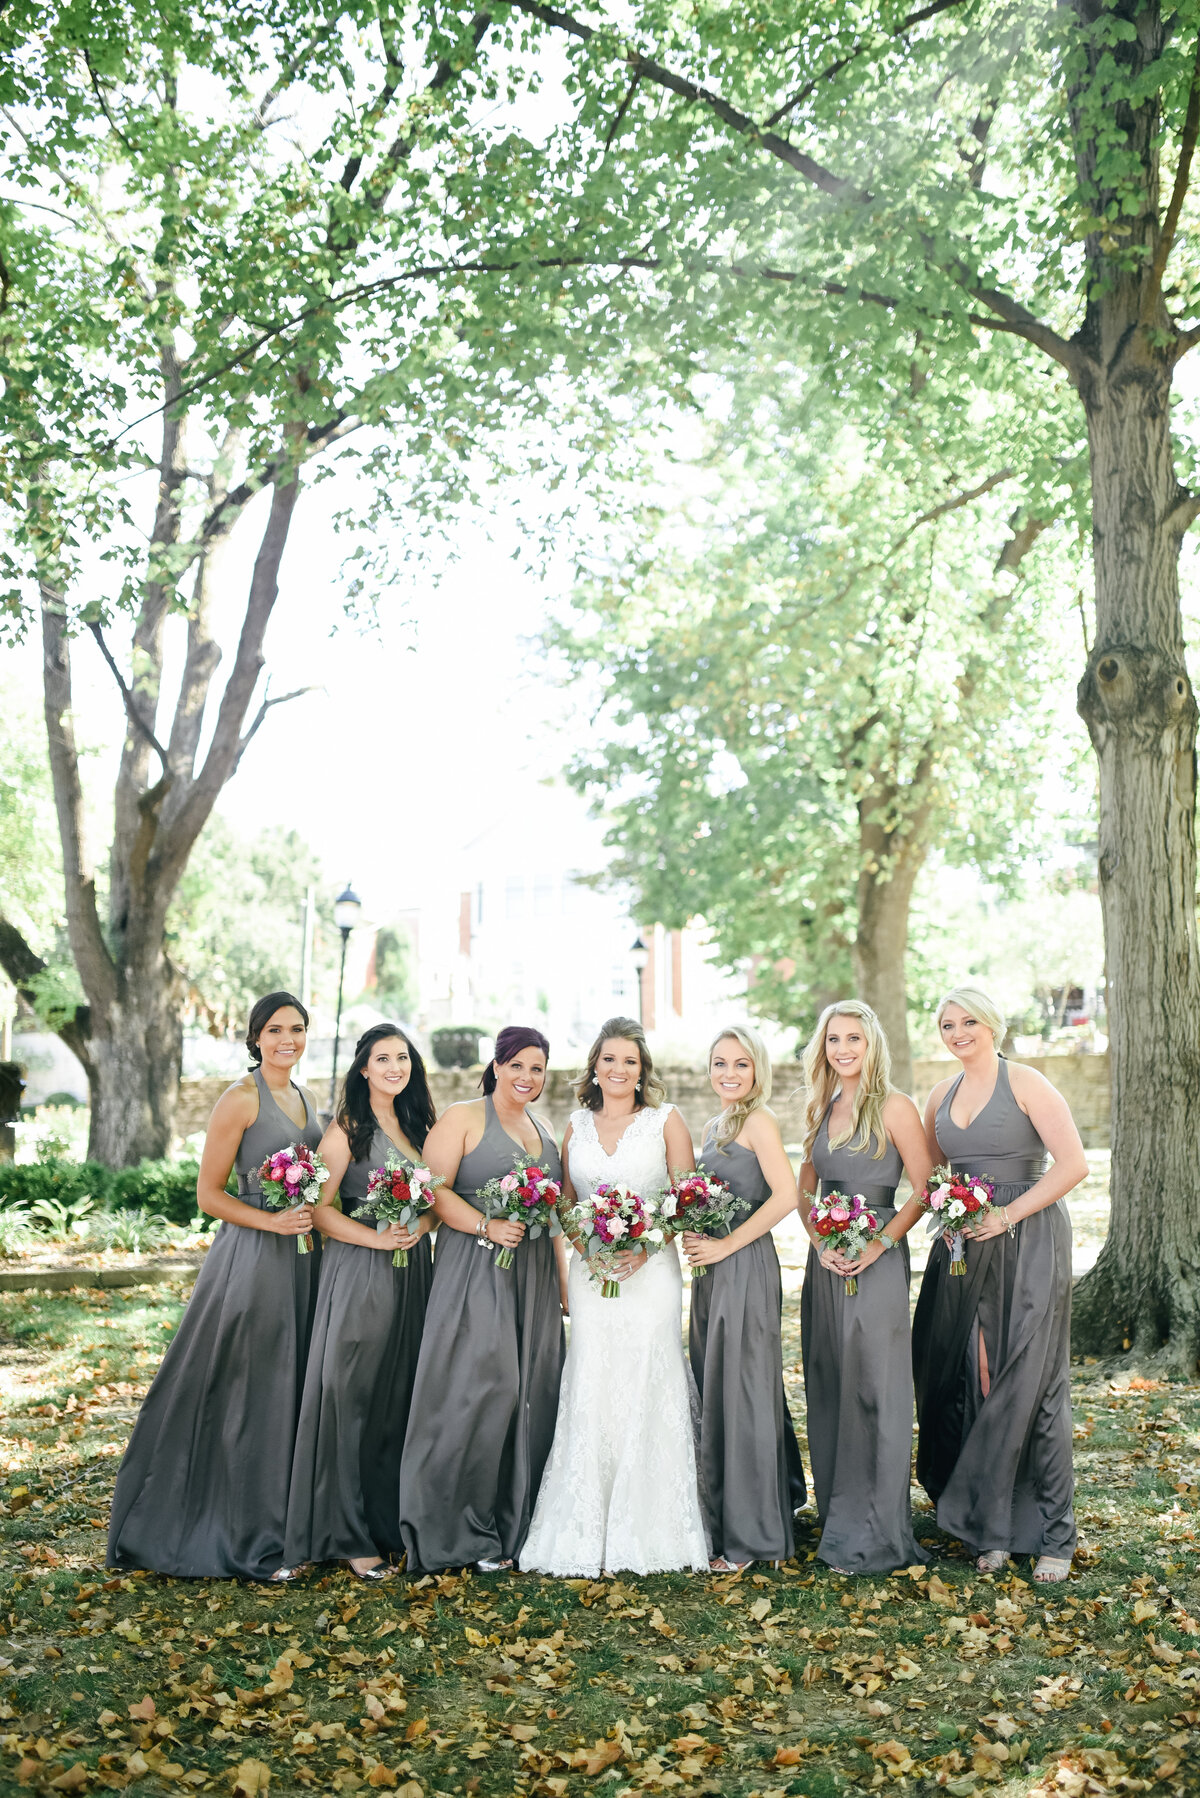 Padurean_BridalParty_071